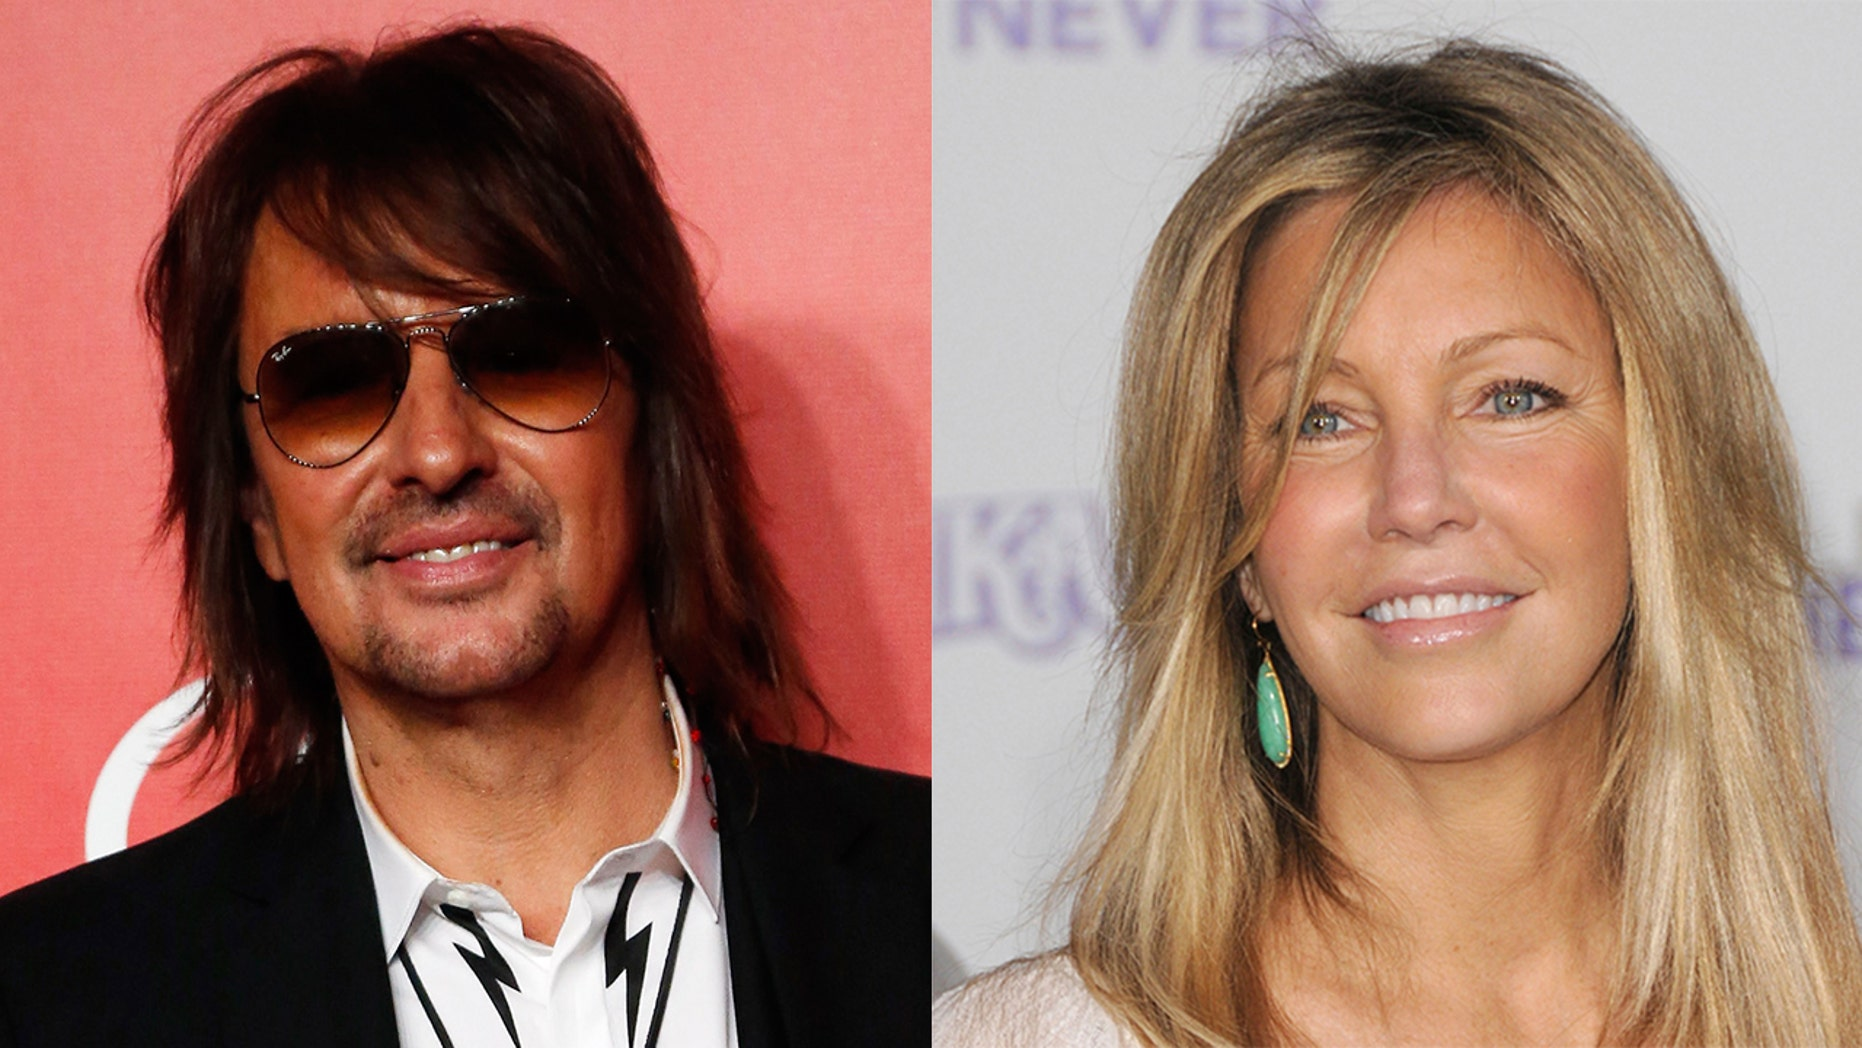 Richie Sambora says he will 'always be there' for ex-wife